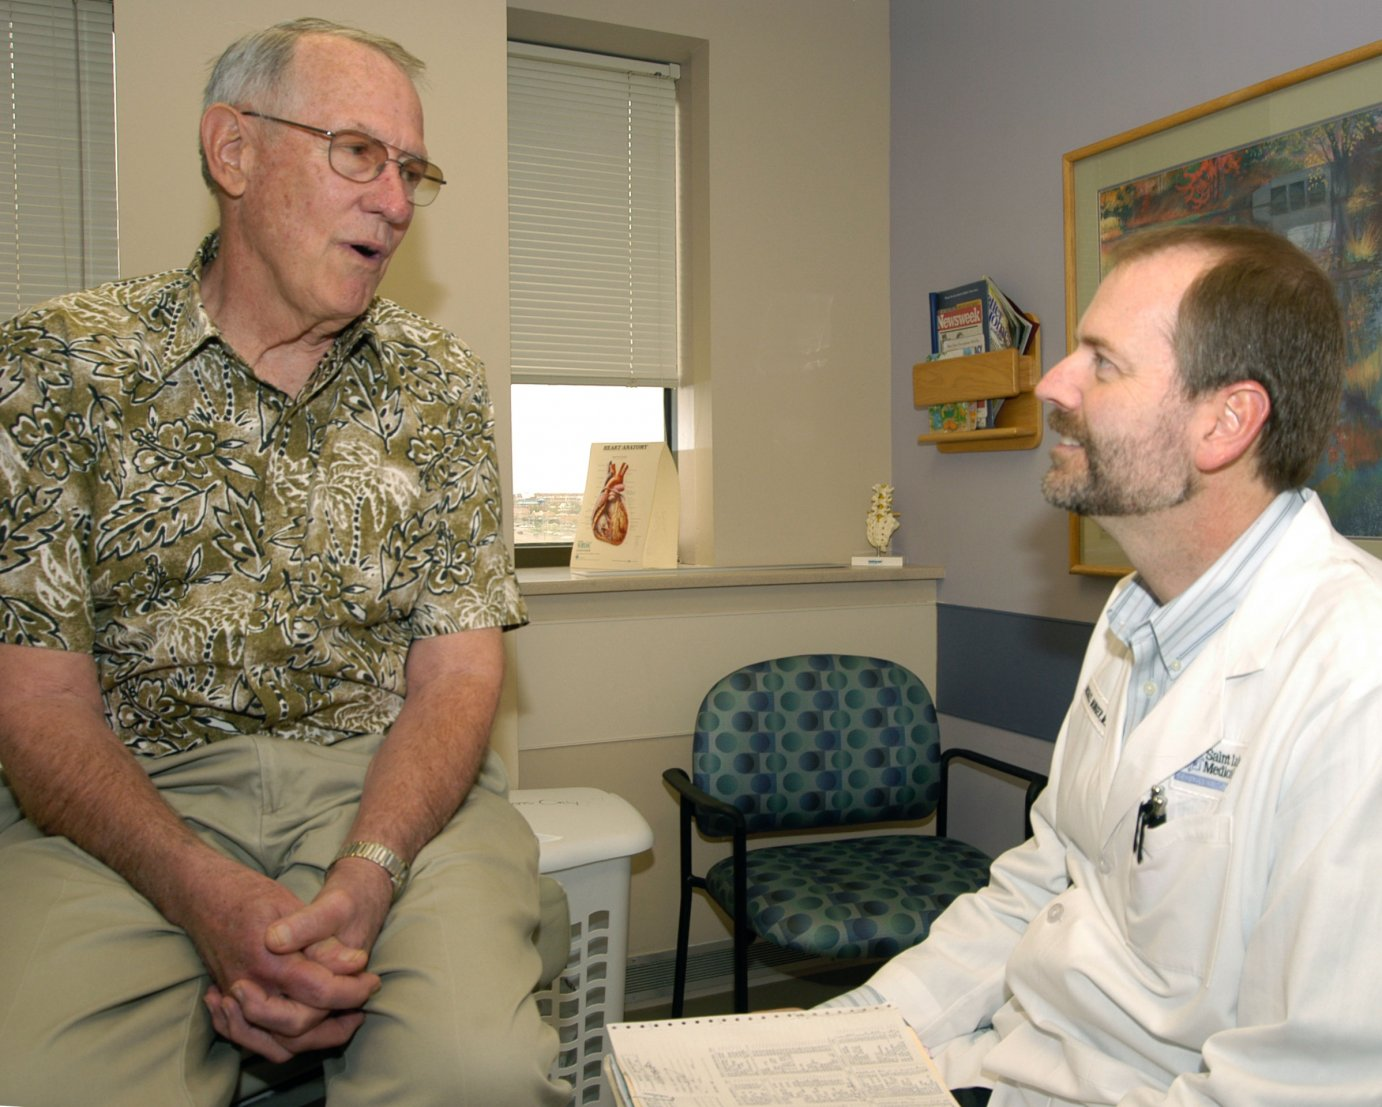 Michael Munger, MD, consults with a patient at his office in Overland Park (photo courtesy AAFP)